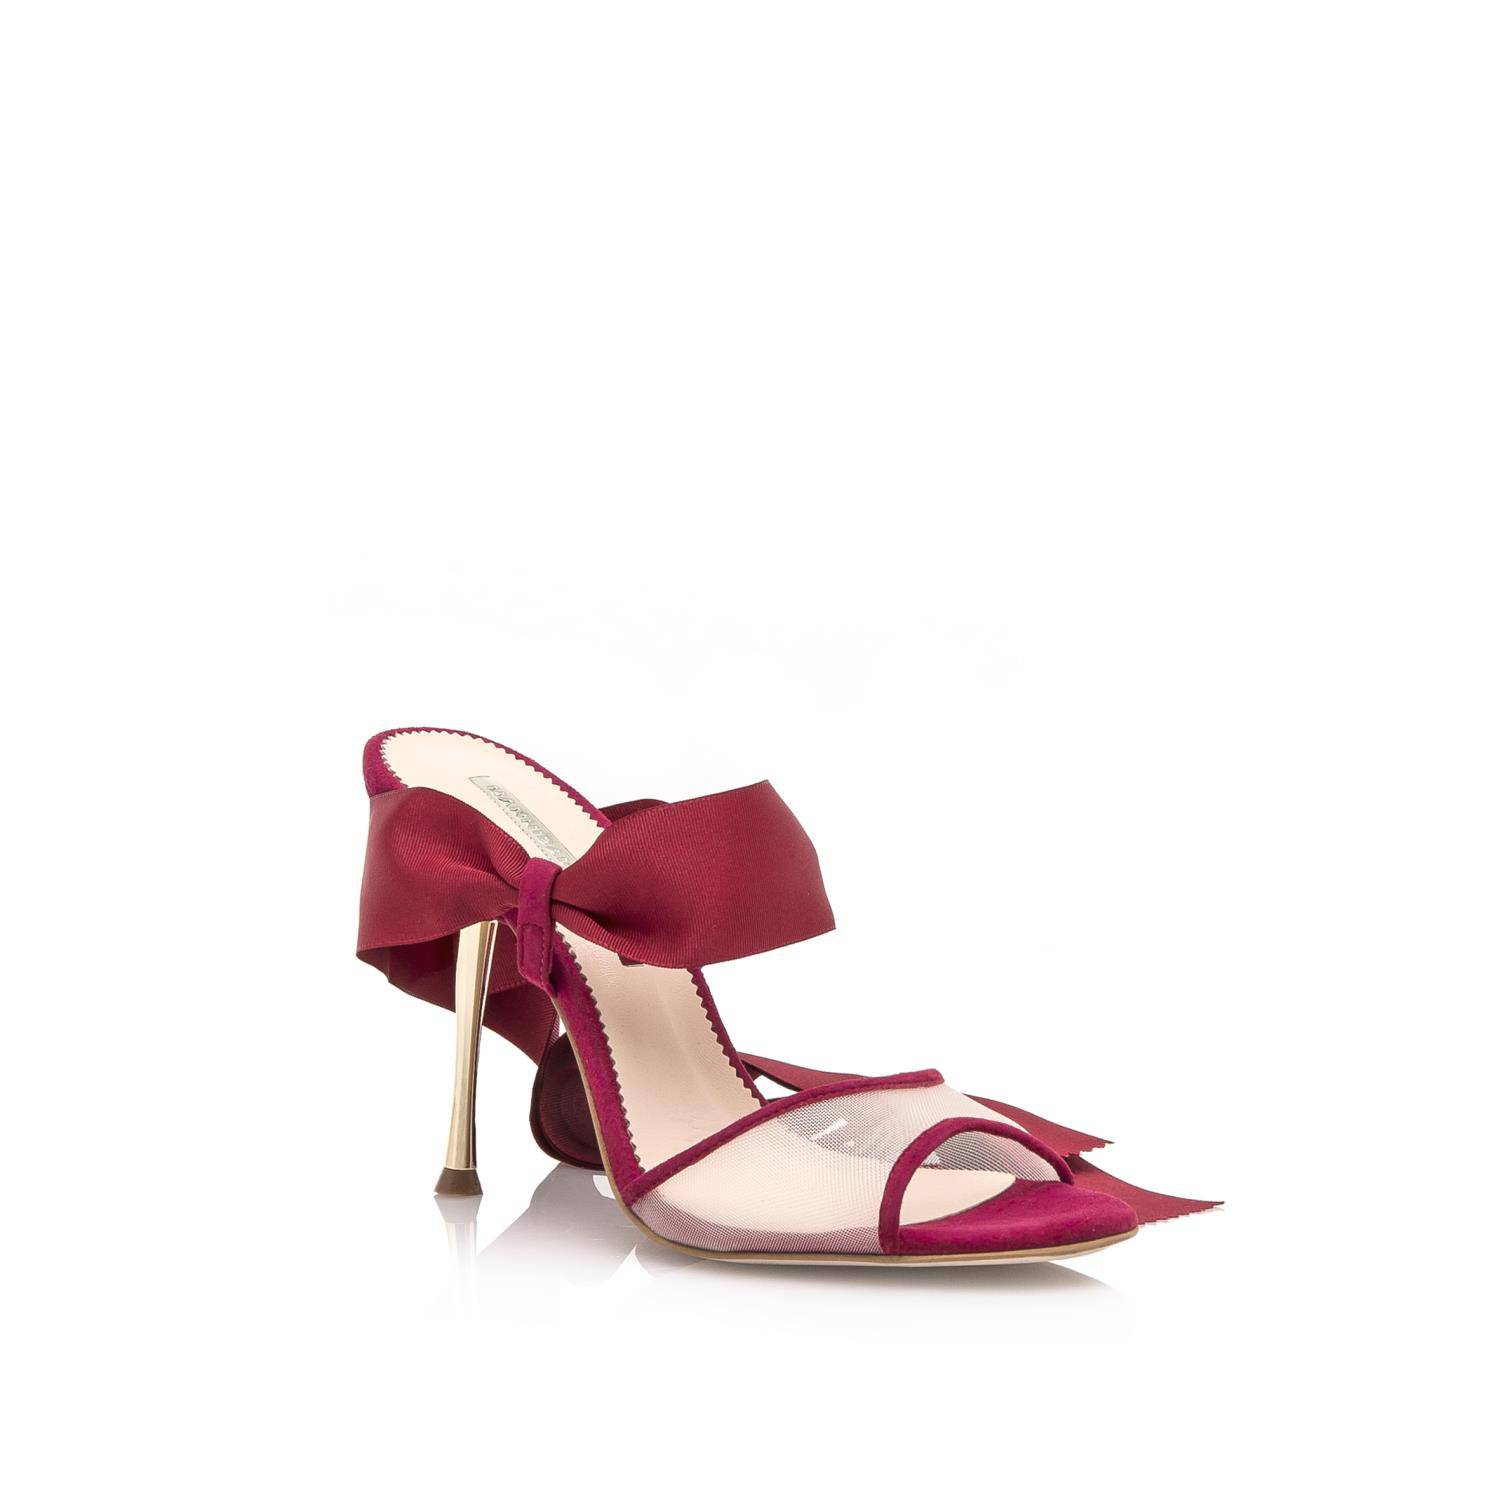 HANNIBAL LAGUNA-Essentials Sandalias Sandalia CHANTAL rojo